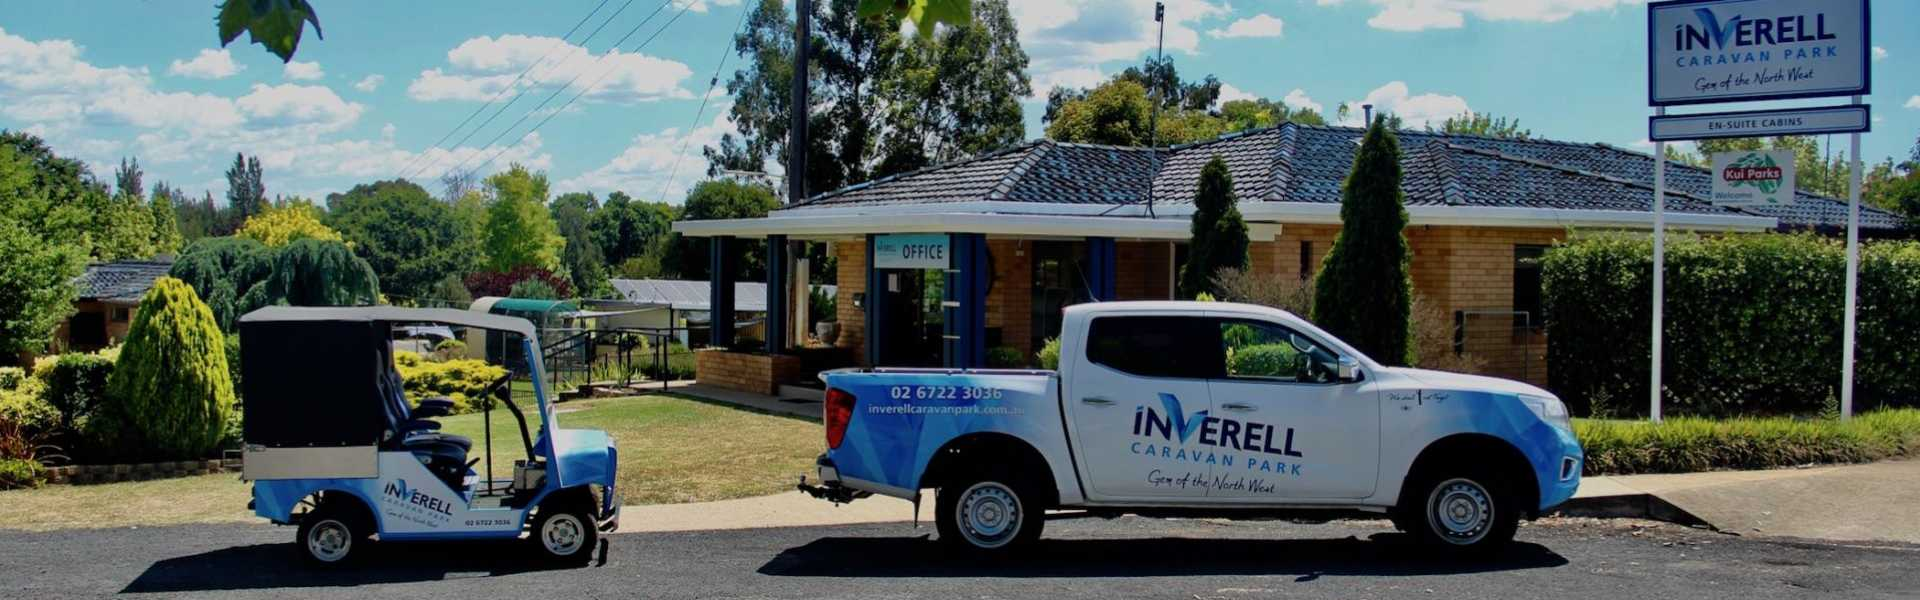 Kui Parks, Inverell Caravan Park Office